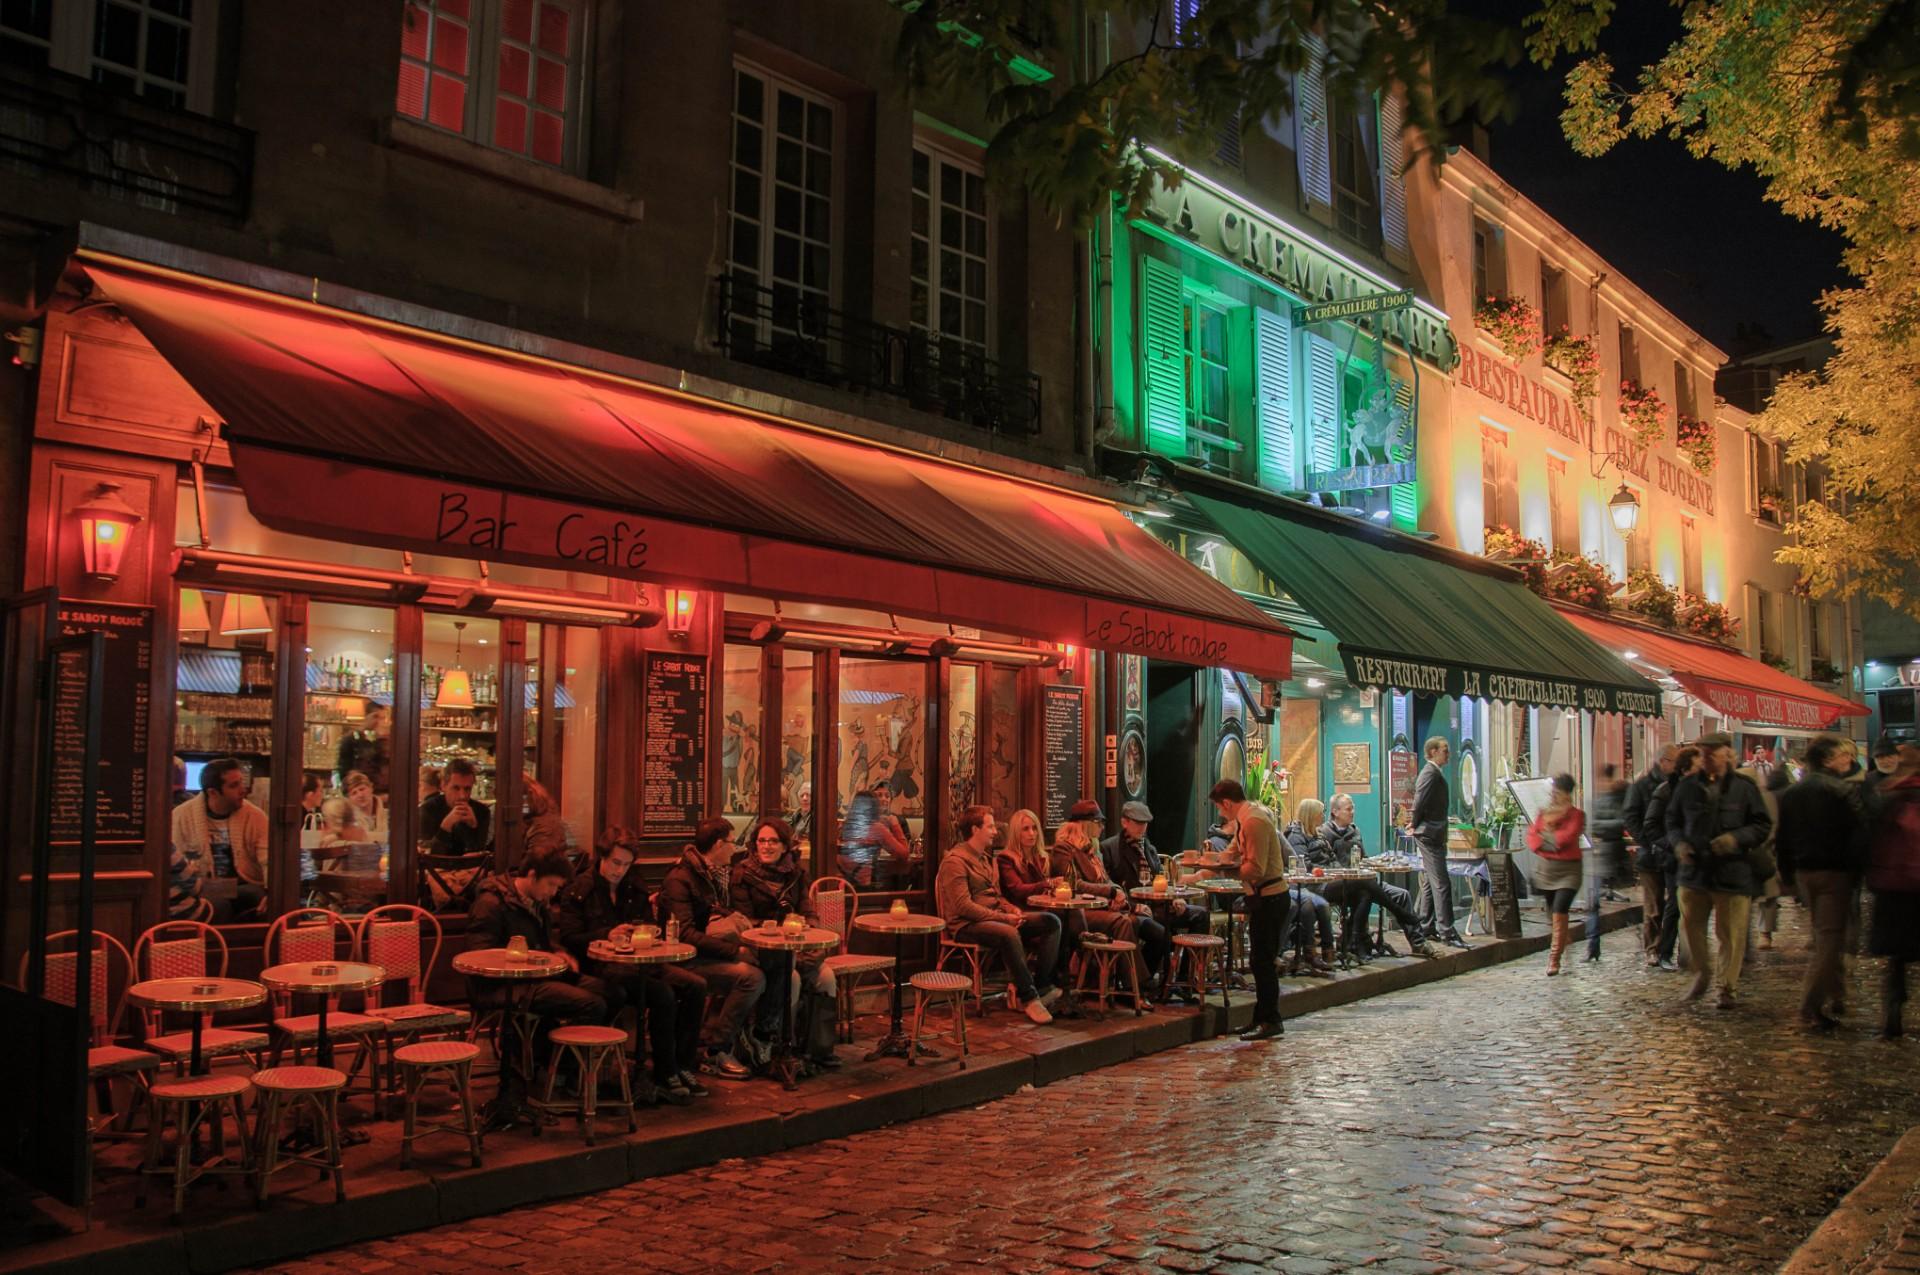 street-night-town-restaurant-city-paris-1233497-pxhere-com